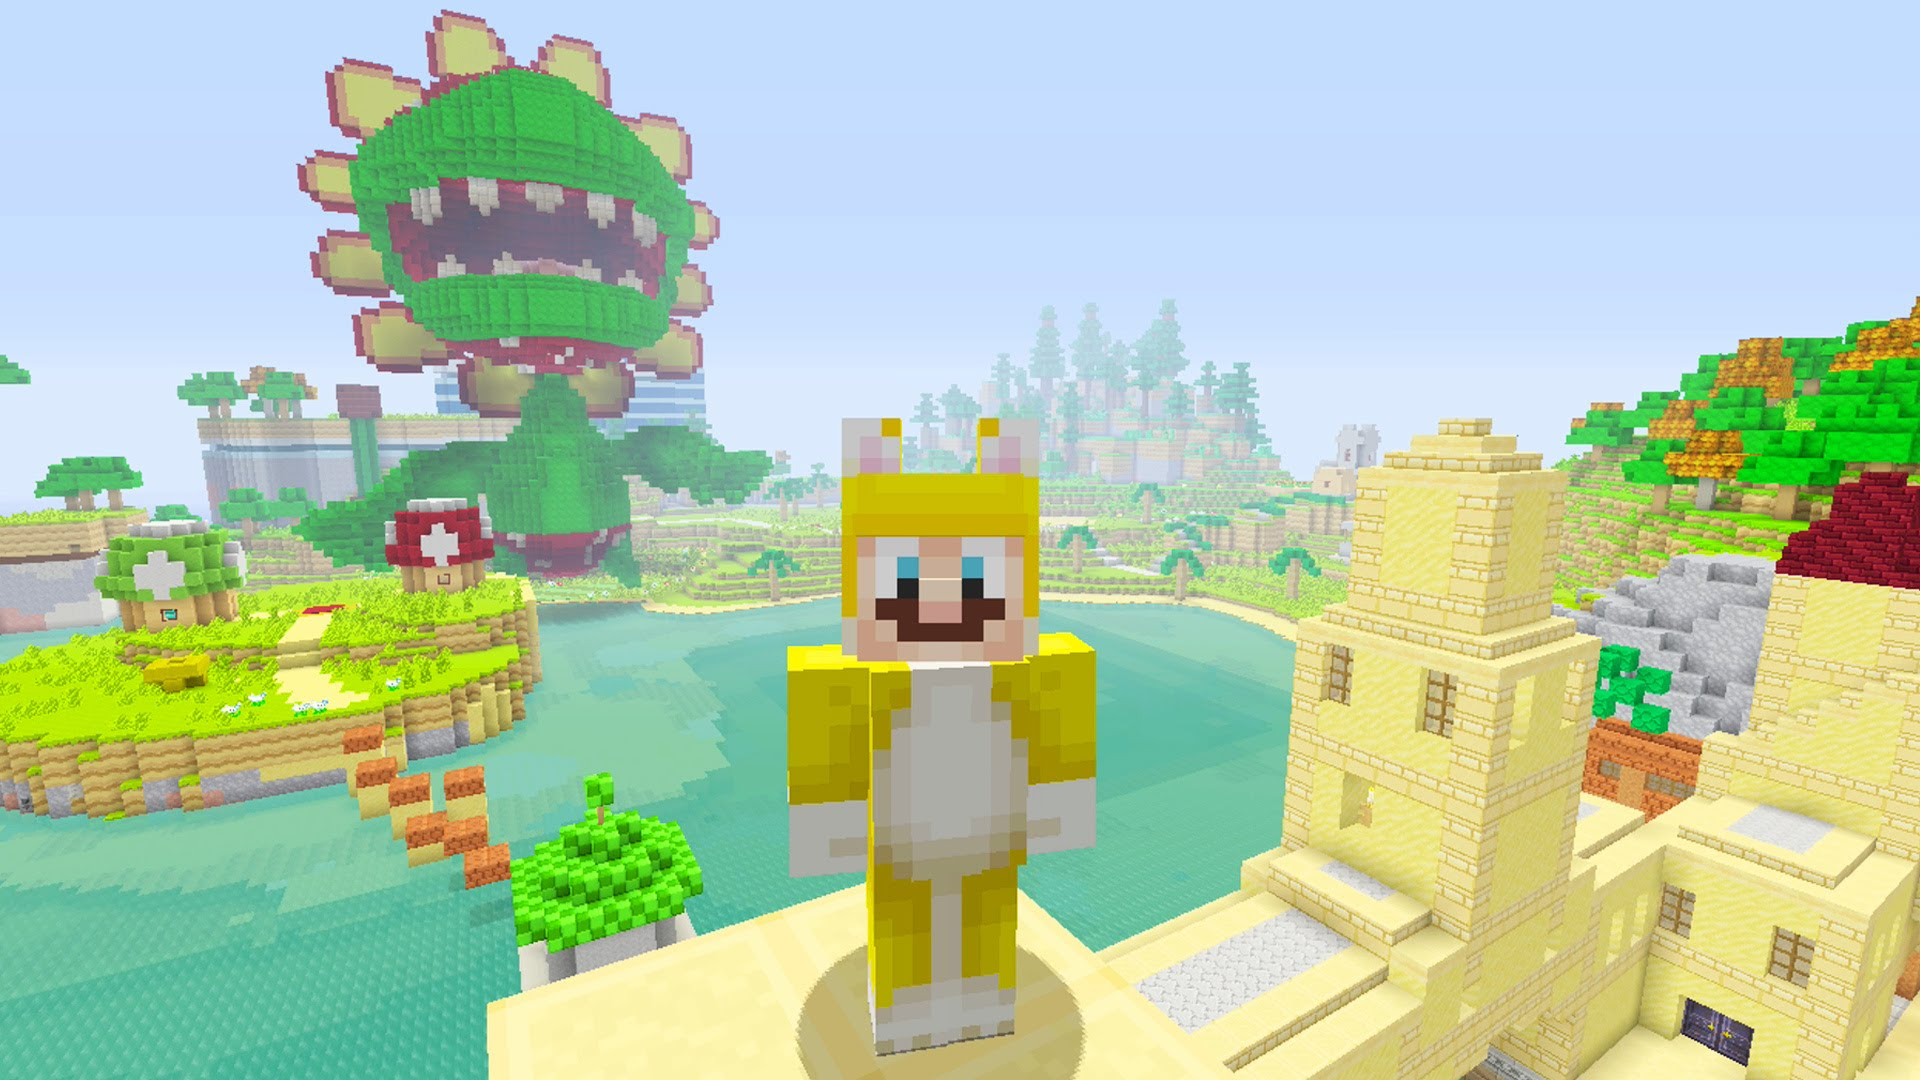 Minecraft's 'Better Together' updates launches today, gets delayed for Switch screenshot